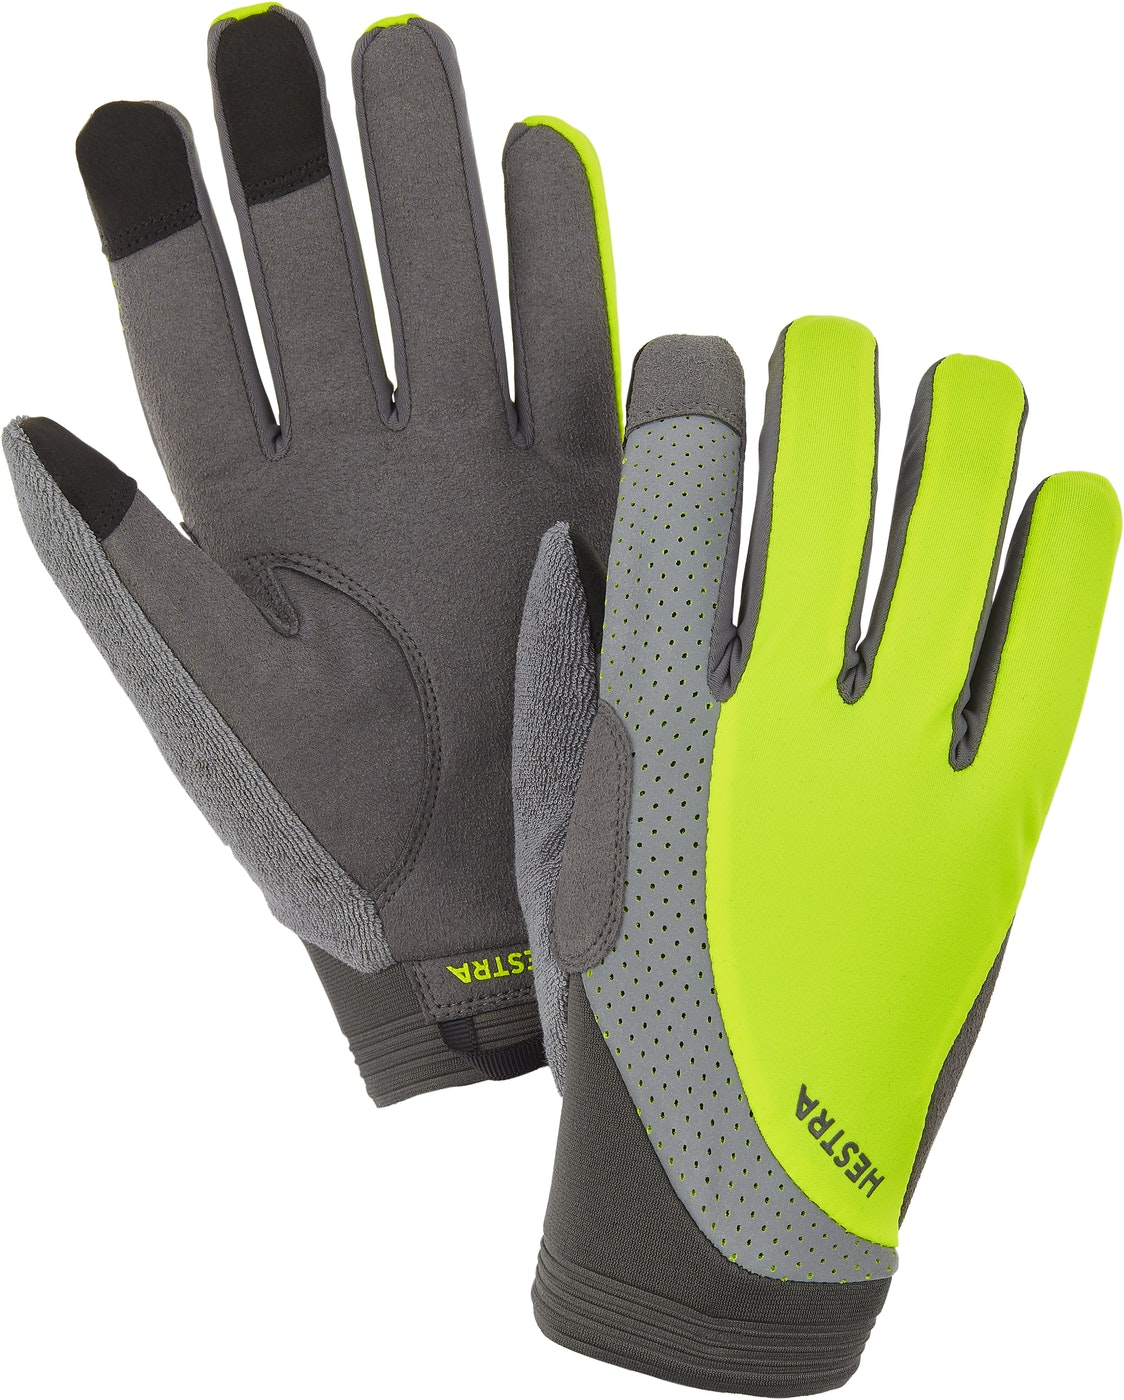 Product image for 39370 Apex Reflective Long